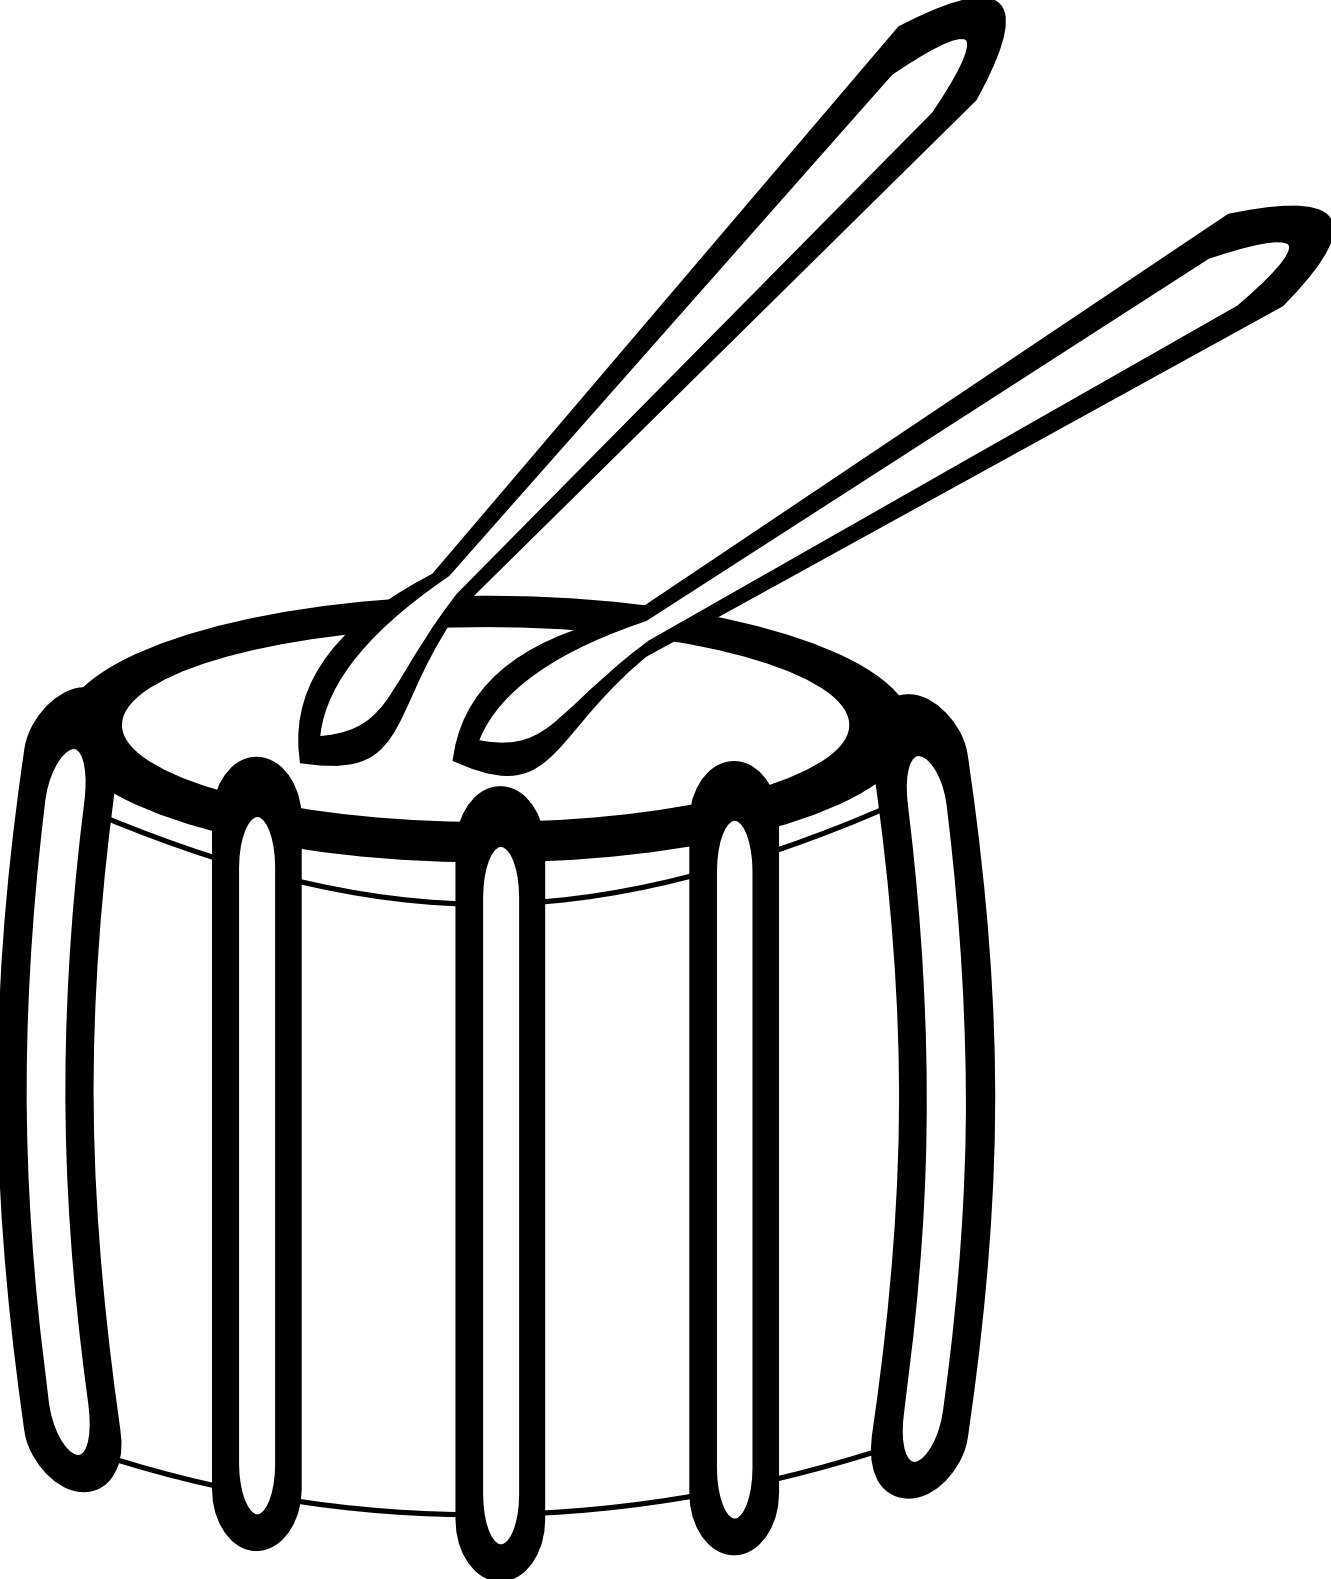 Drum clipart drum container. Snare black and white